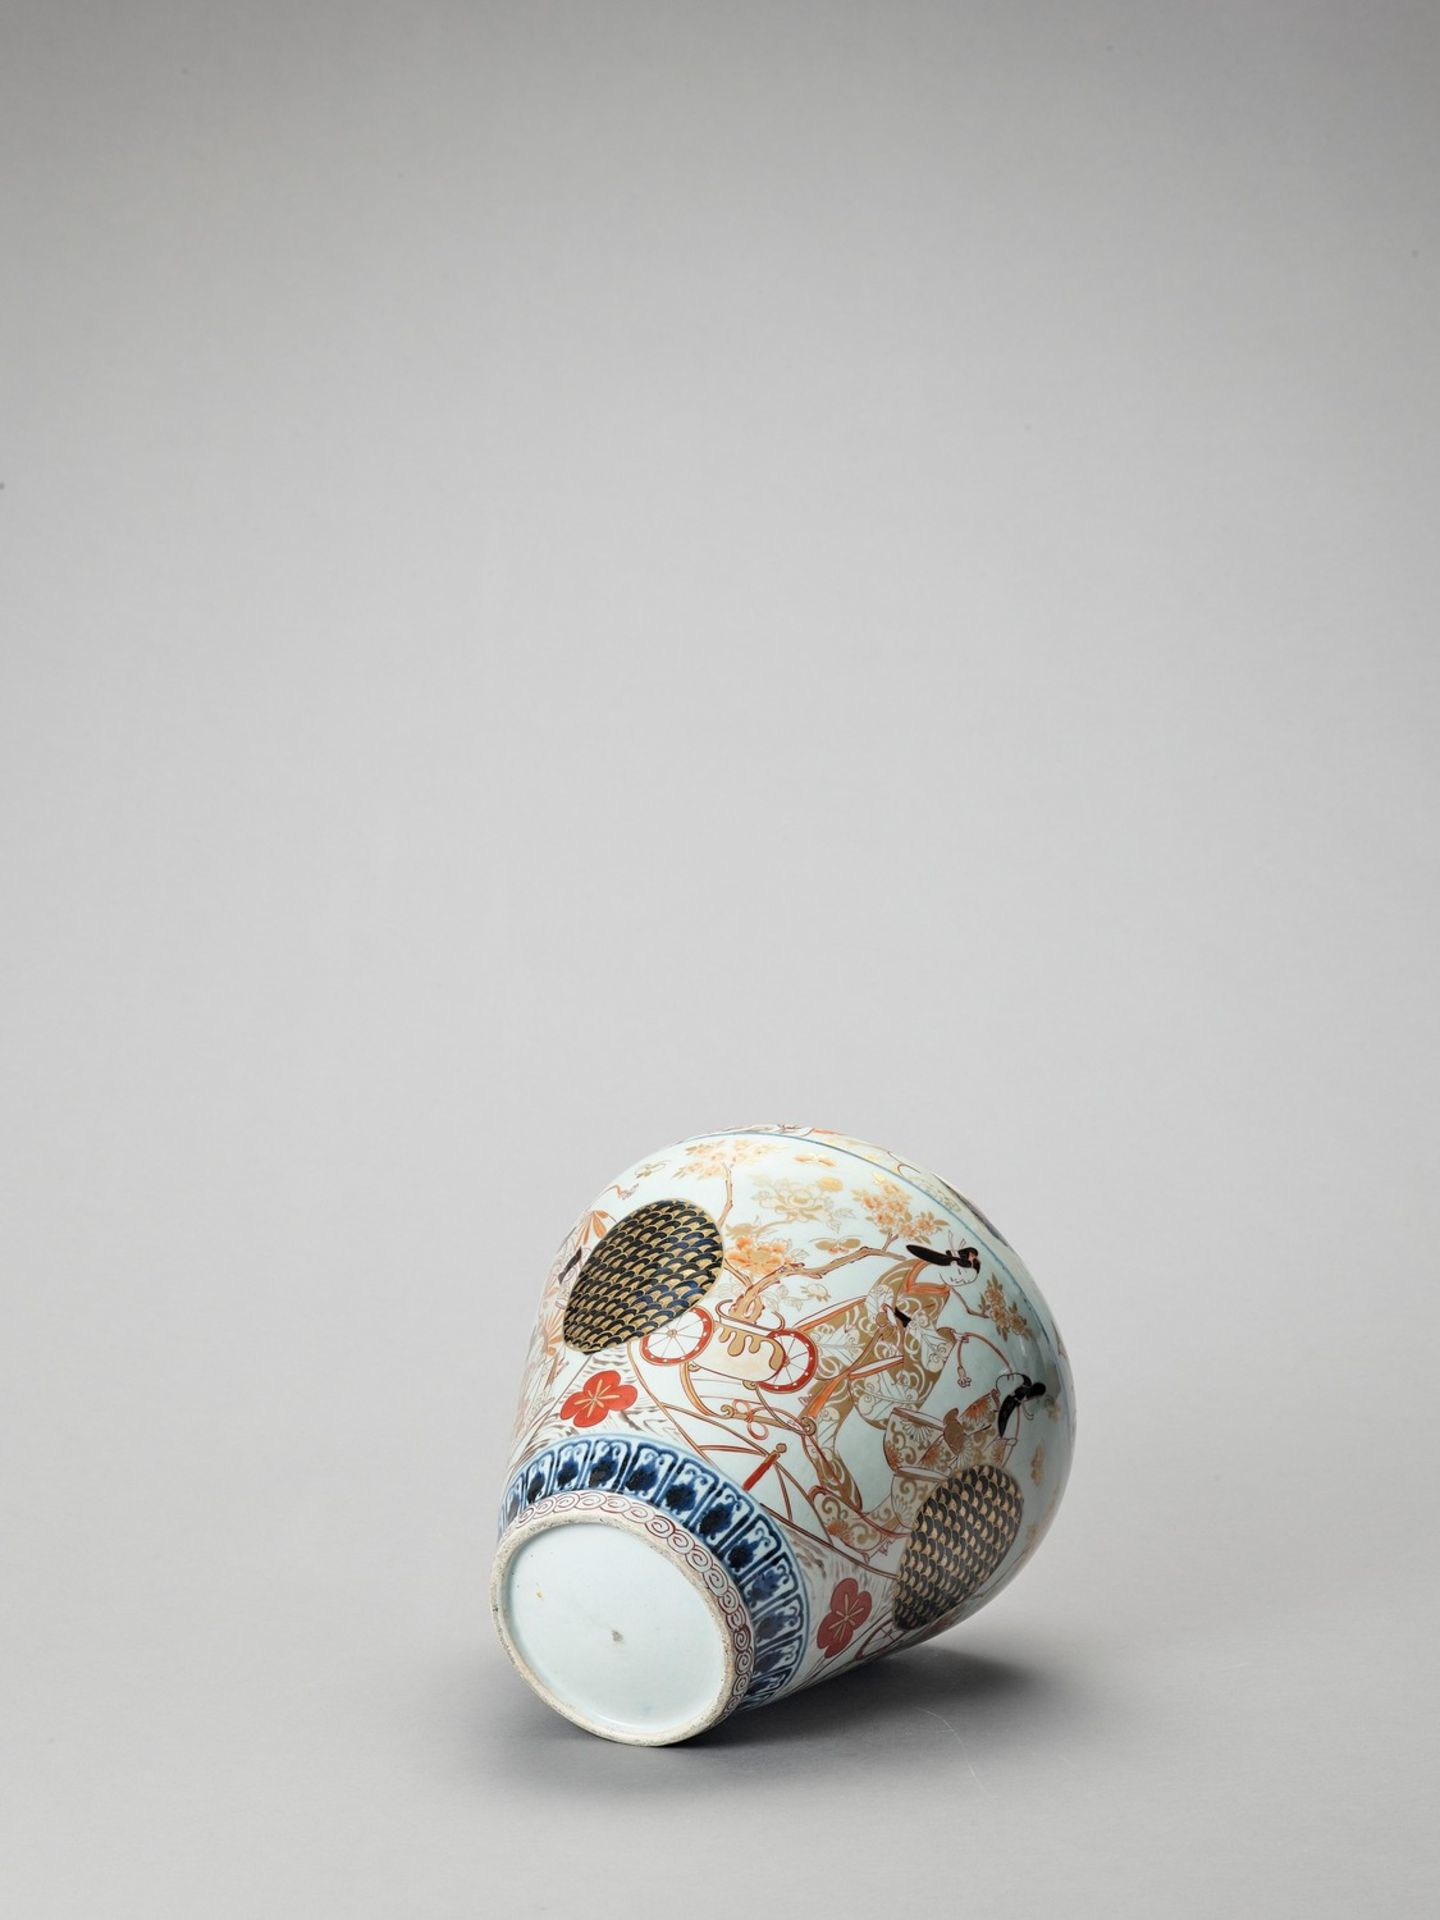 A LARGE IMARI PORCELAIN BALUSTER VASE AND COVER - Image 7 of 7